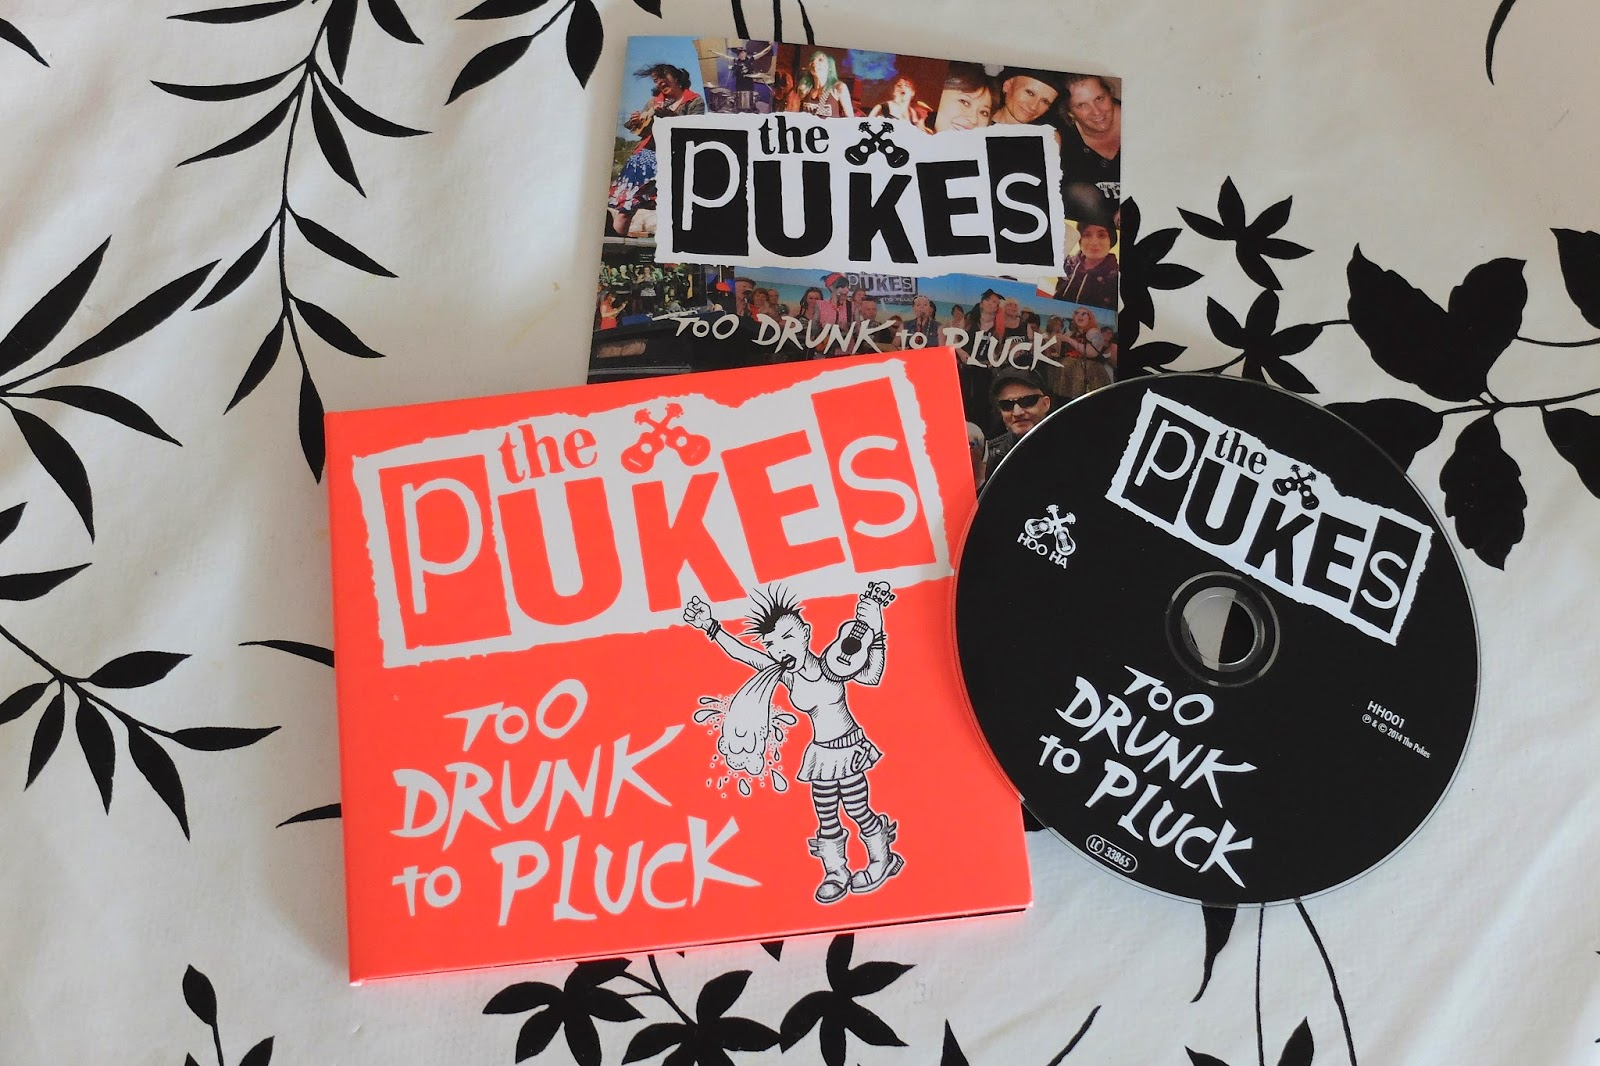 The pUKEs ukulele CD Too Drunk To Pluck